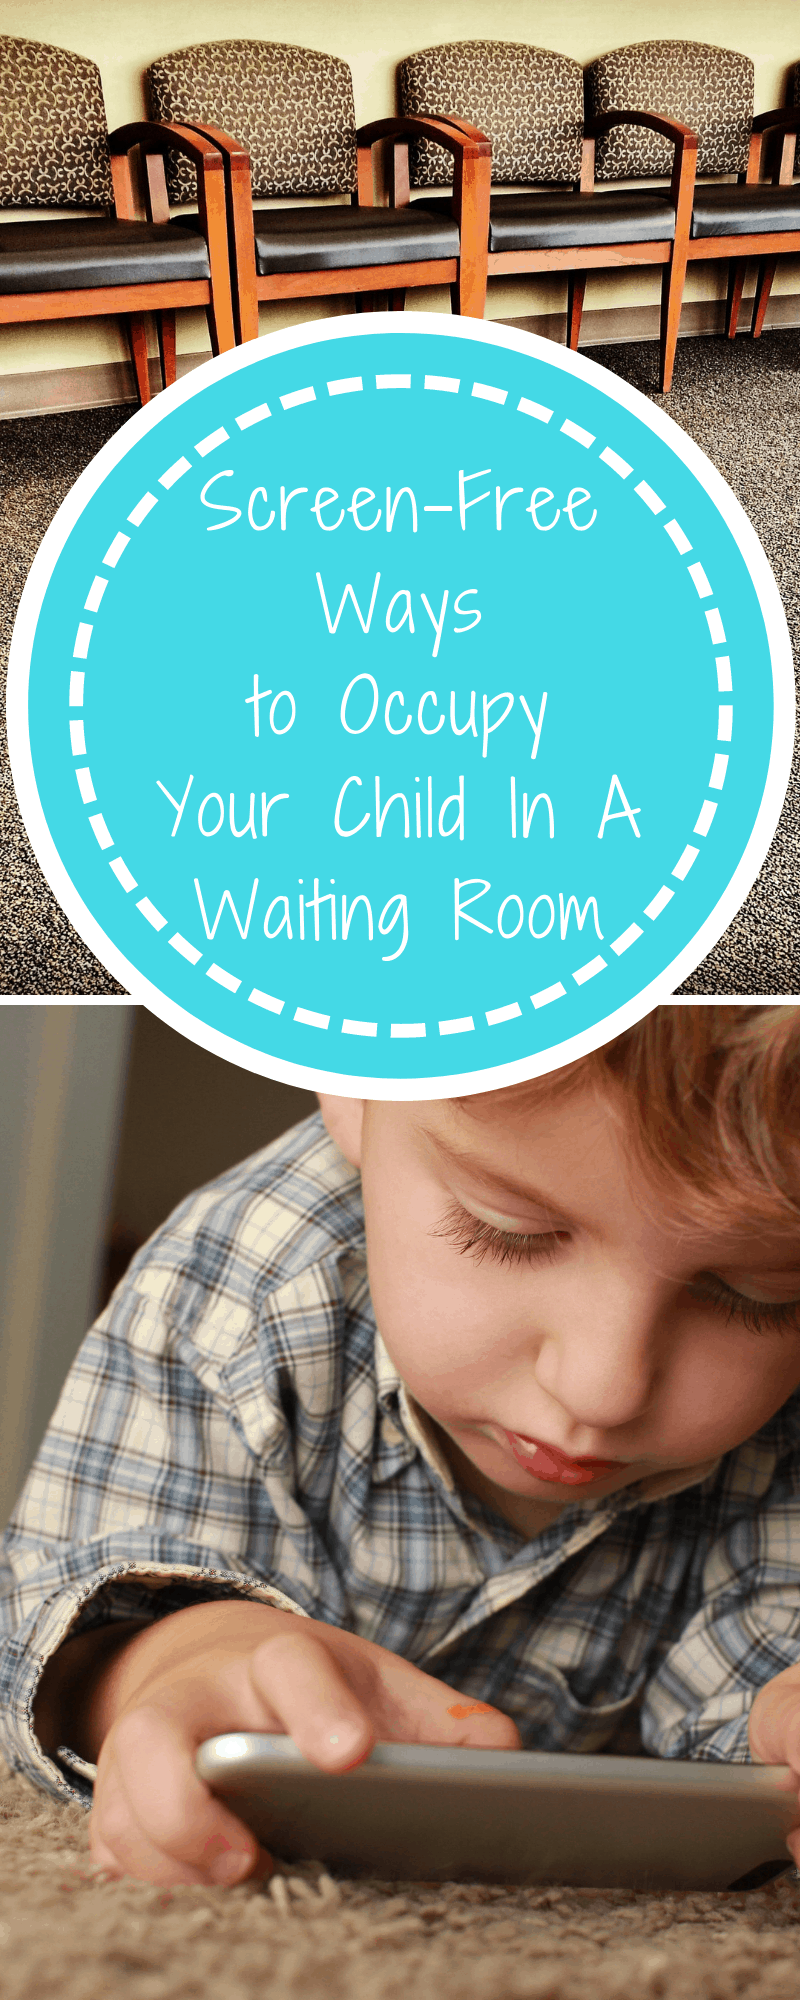 Screen-Free Ways To Occupy Your Child in the Waiting Room